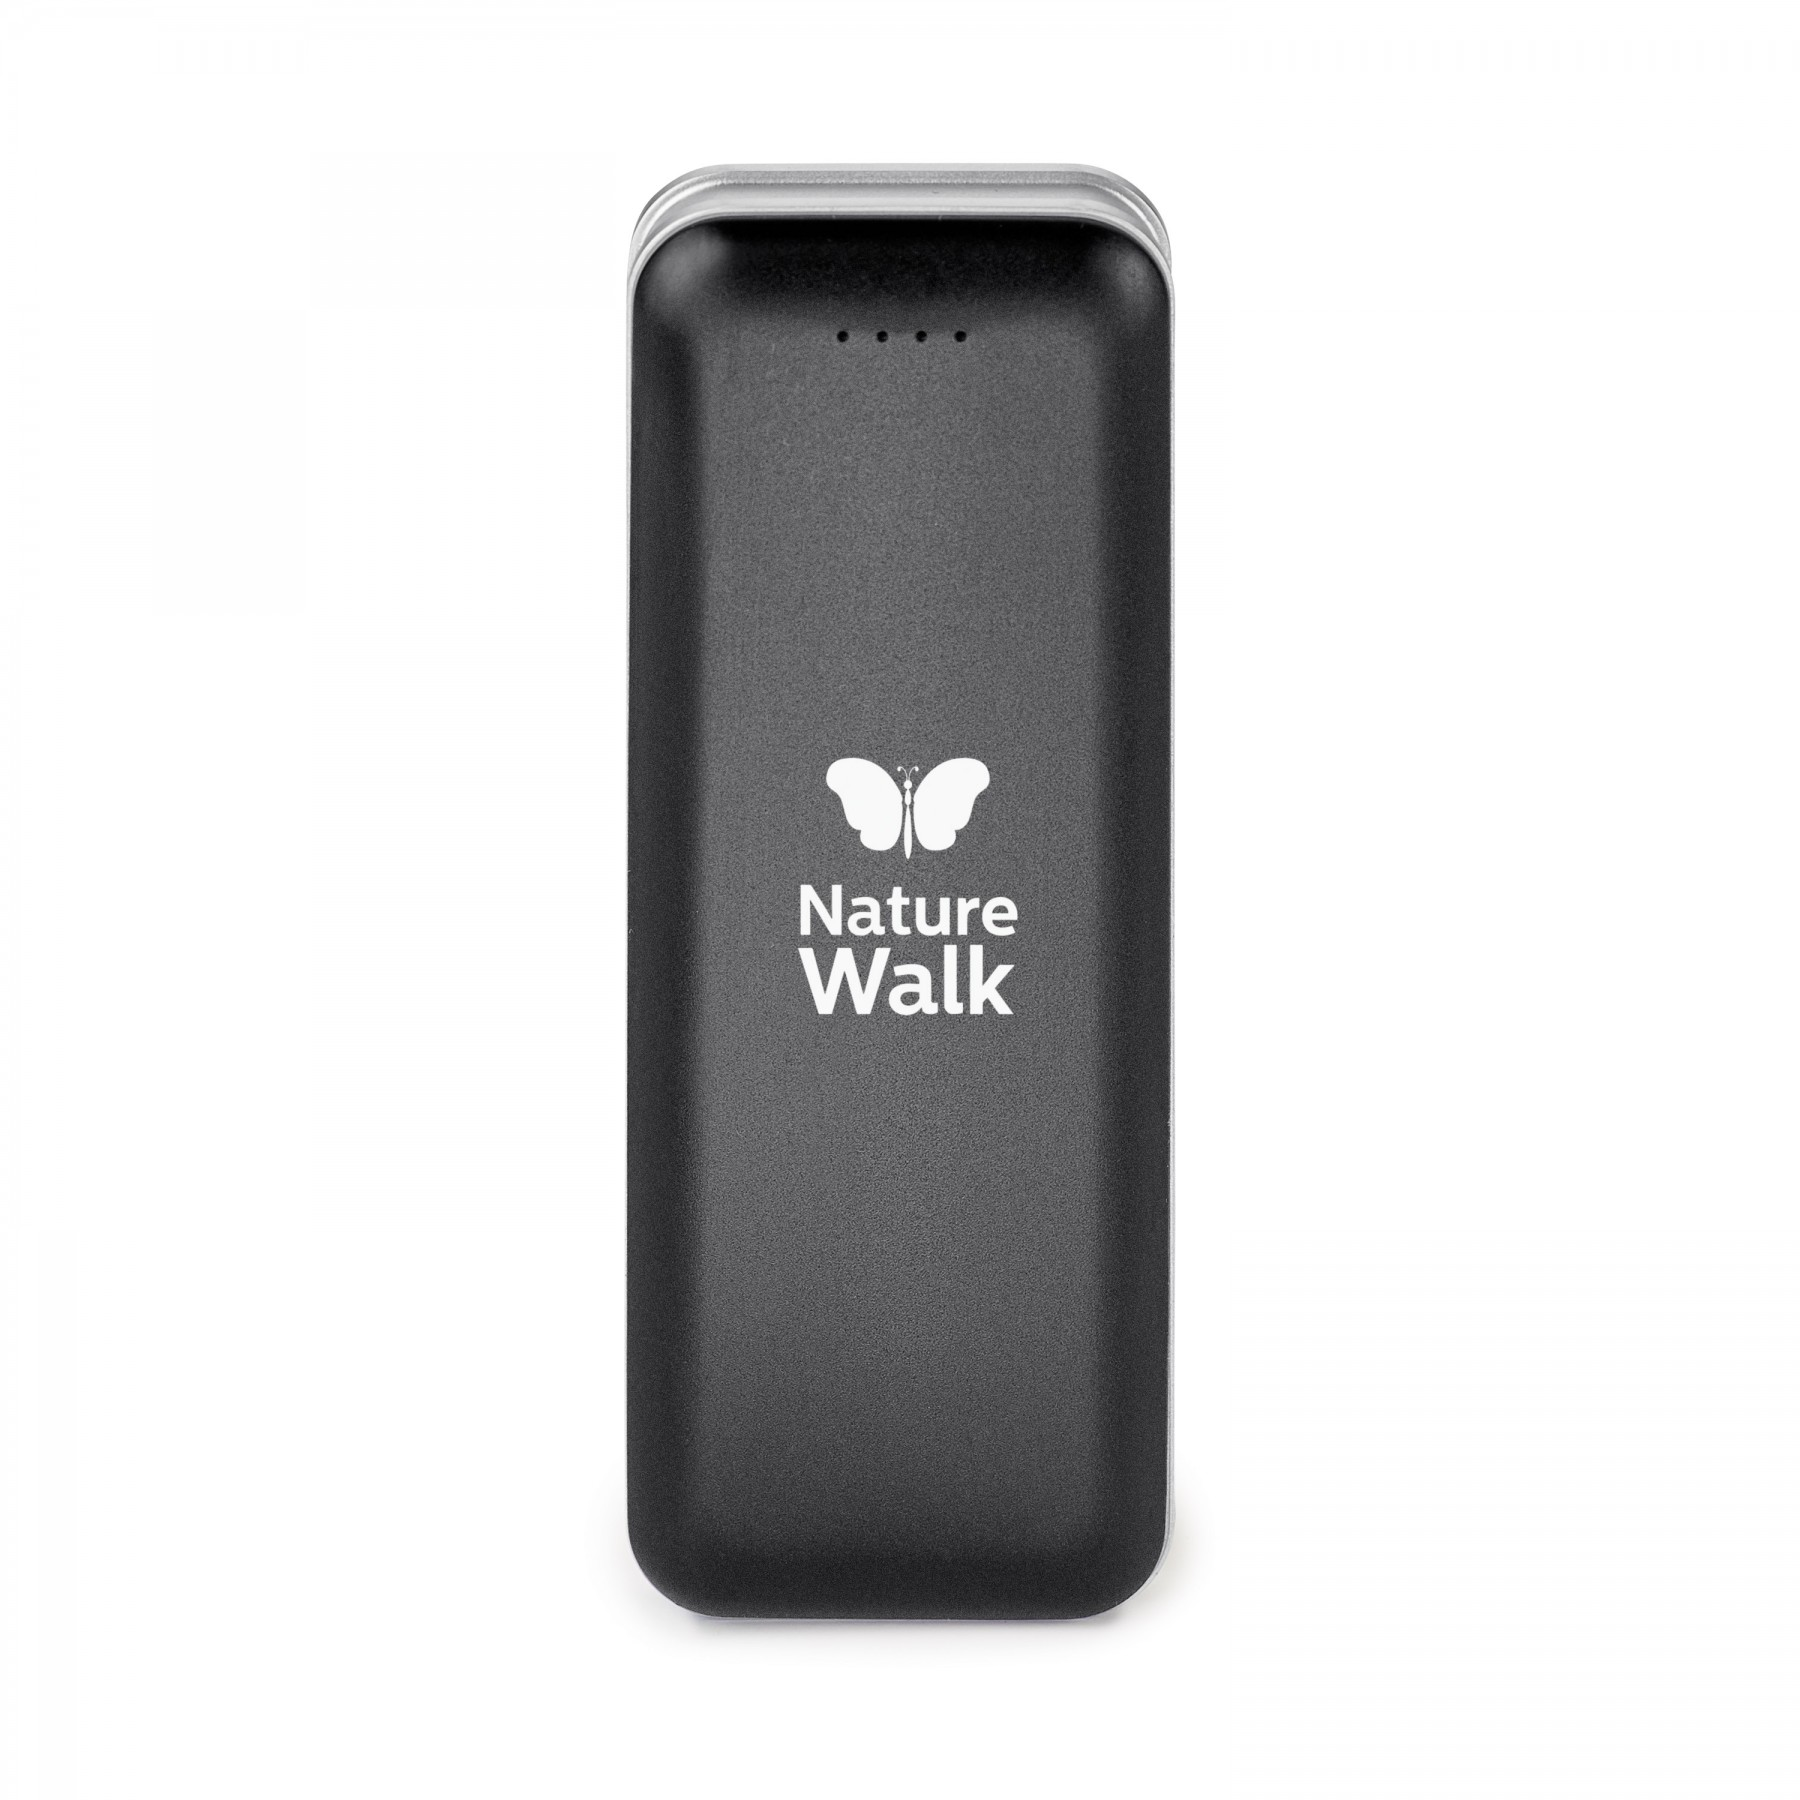 MISSION 4,000 mAh UL CERTIFIED POWER BANK, T1026, Laser Engraved